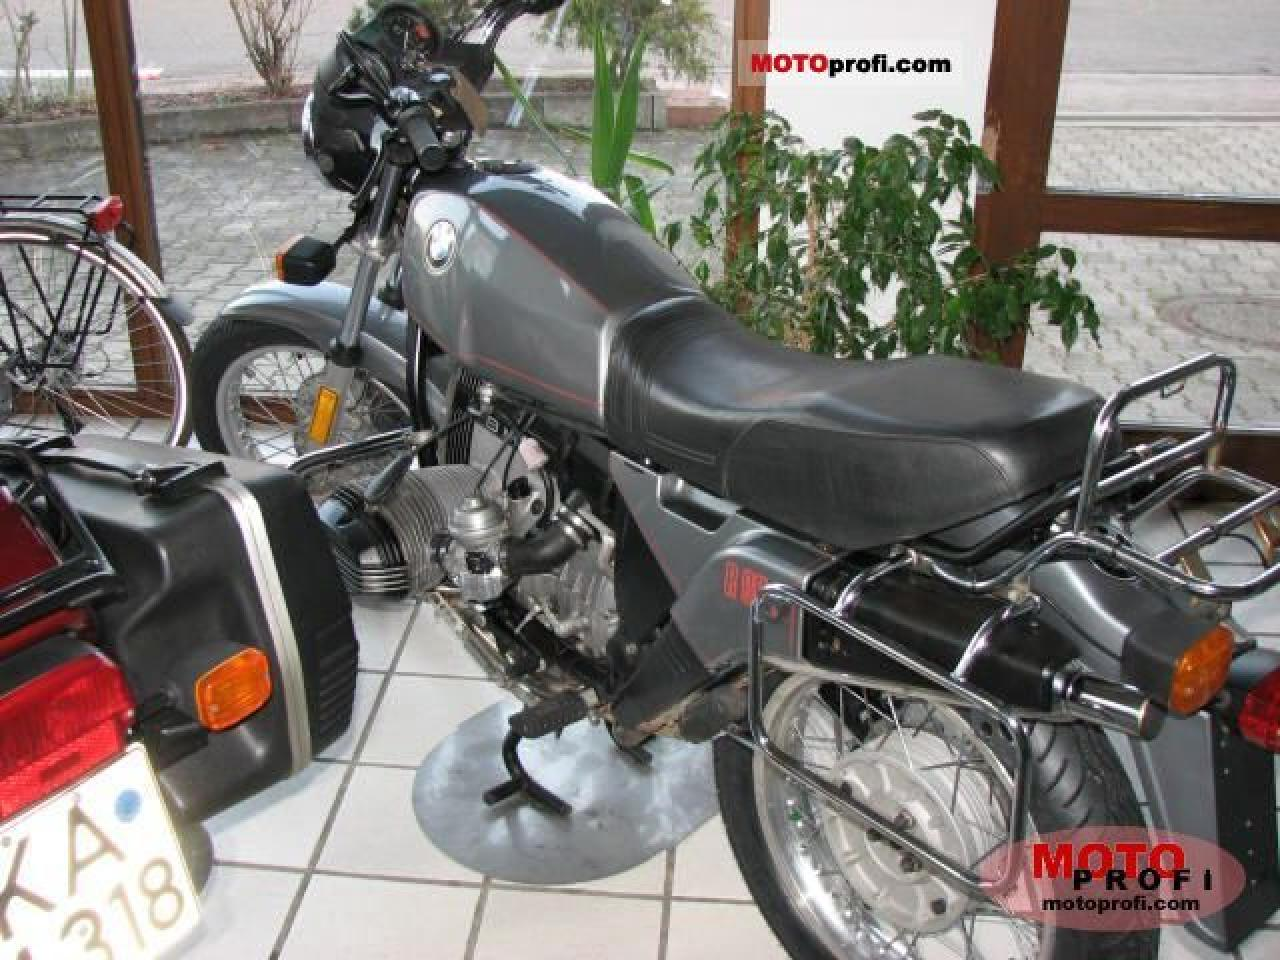 BMW R45 (reduced effect) 1984 images #154550